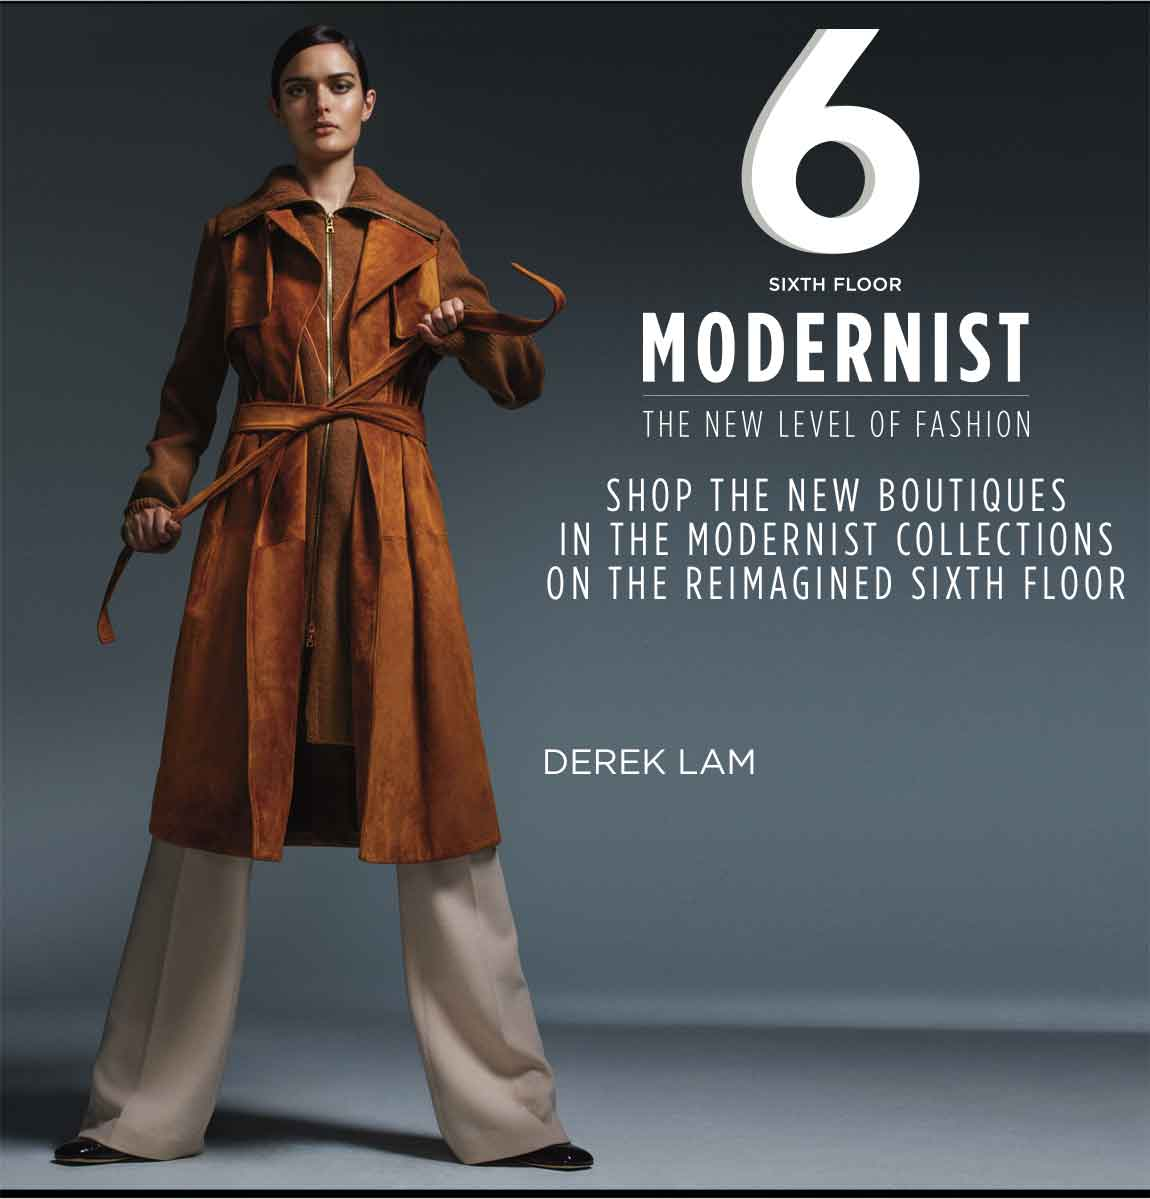 6th Floor Modernist